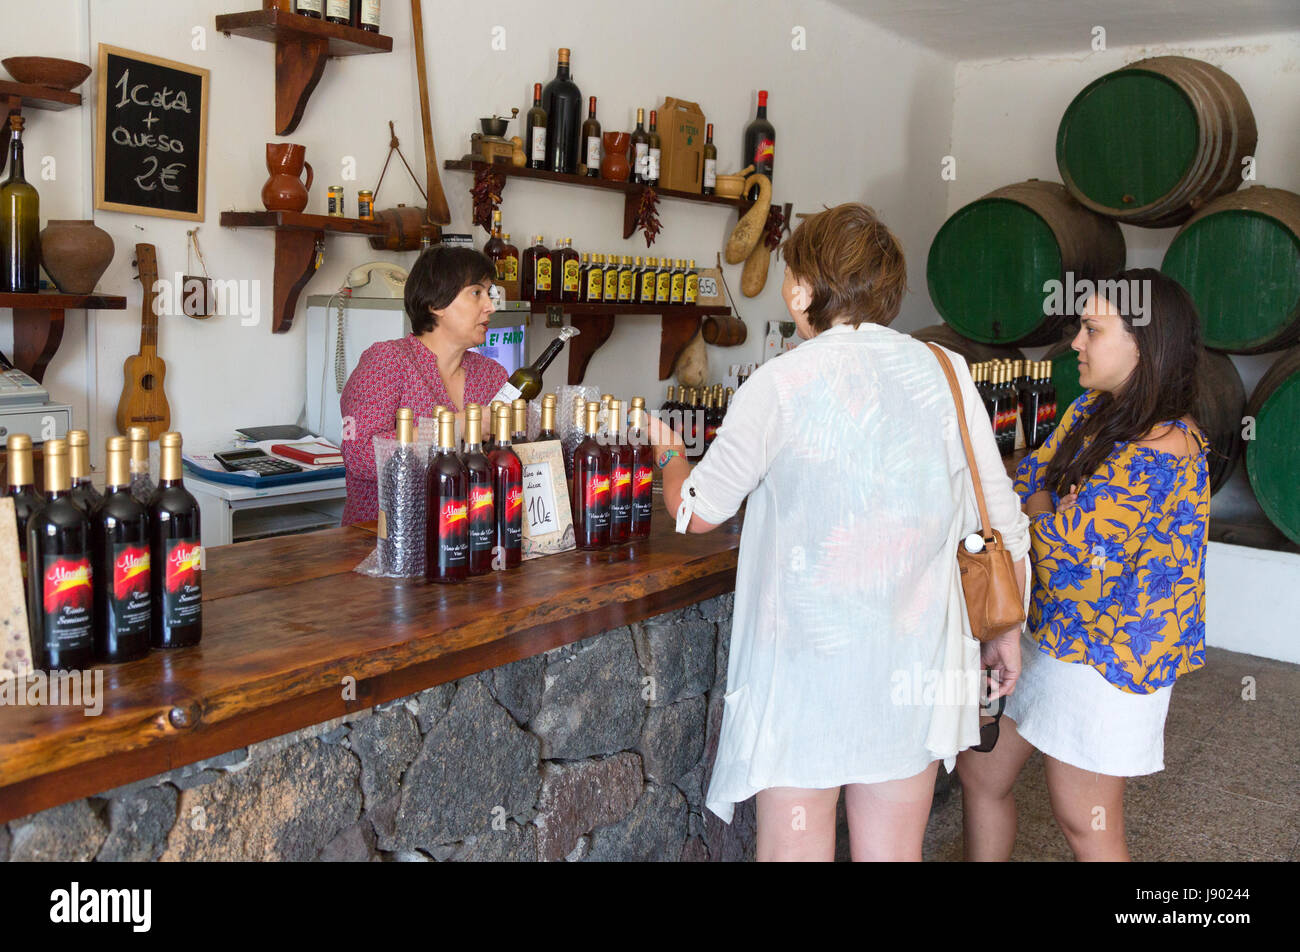 Lanzarote wine - two tourists wine tasting in a Lanzarote vineyard or bodega, Lanzarote, Canary Islands, Europe - Stock Image